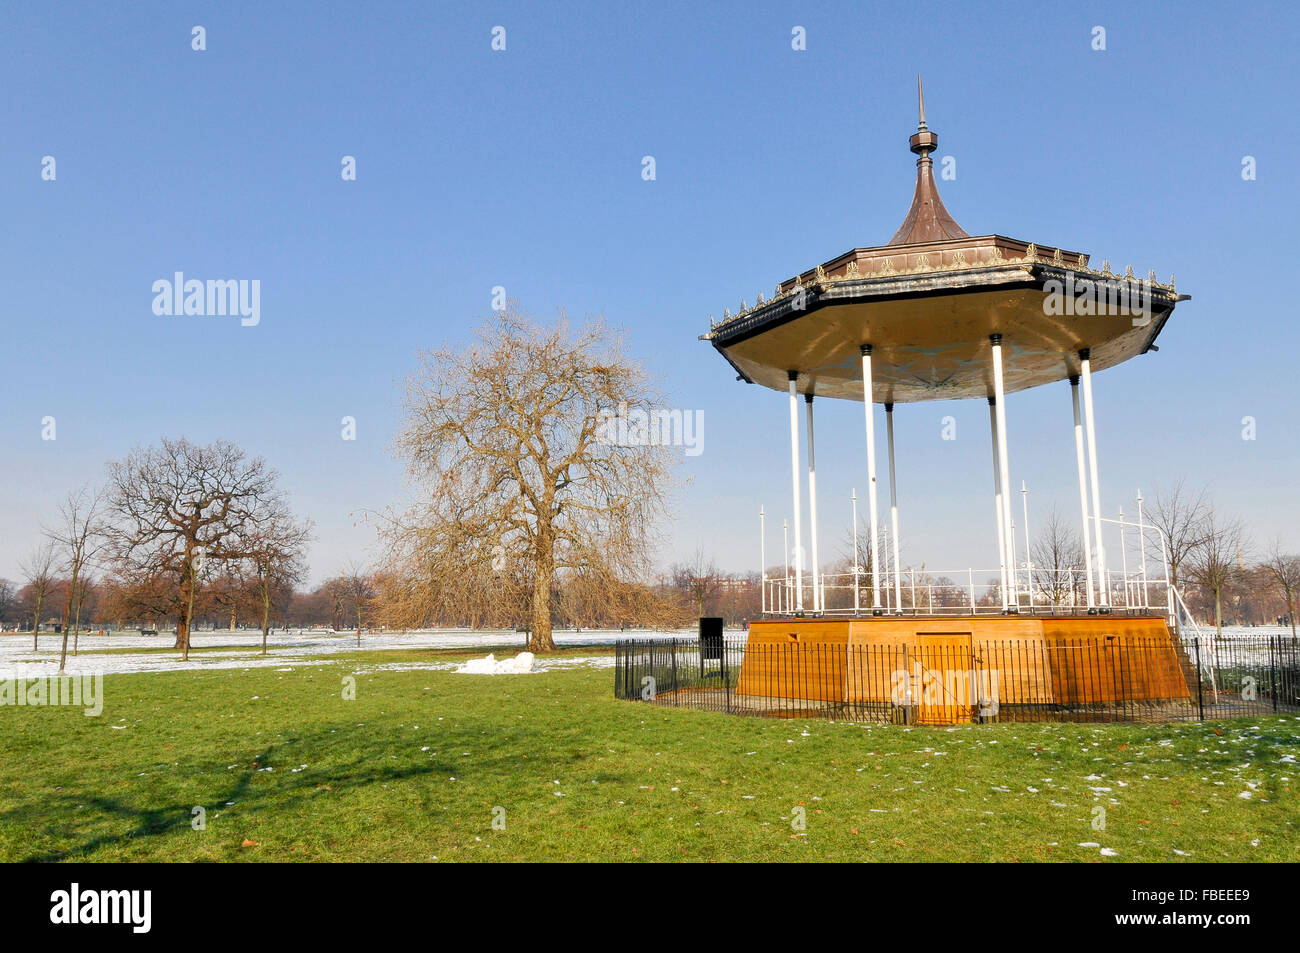 Bandstand in Kensington Gardens in Snow - Stock Image